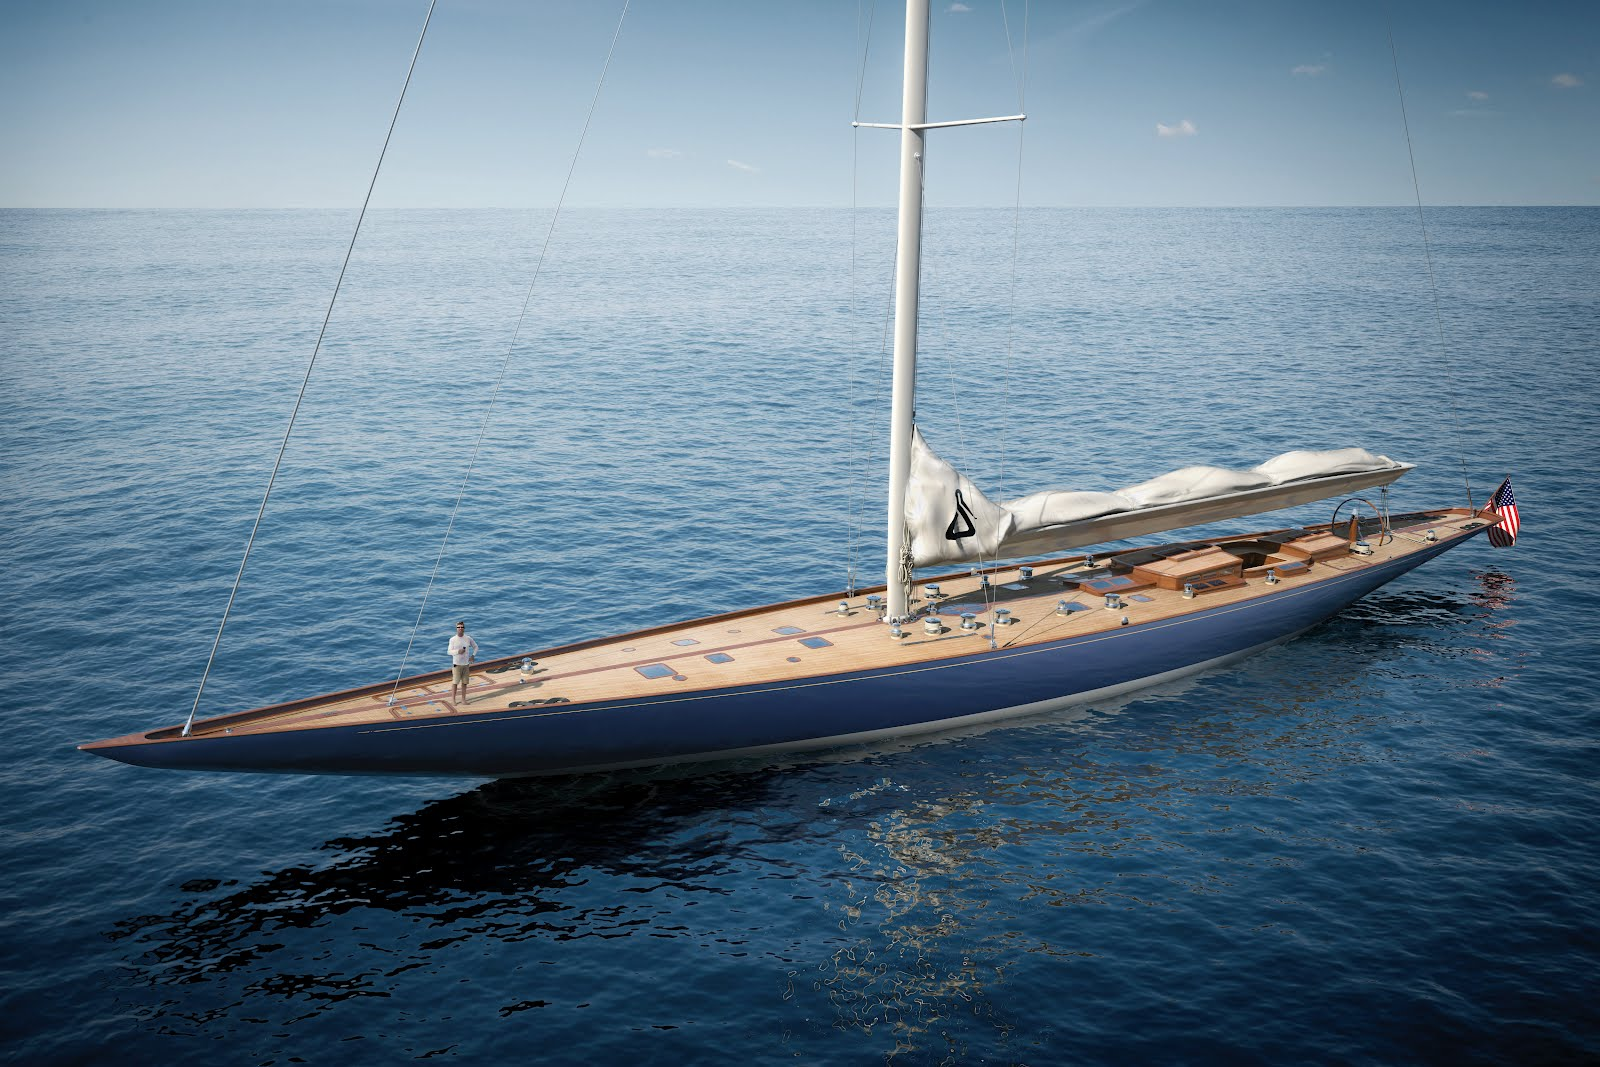 Luxus segelyacht holz  Megayacht Global: New J Class Build 'Cheveyo' by Spirit Yachts